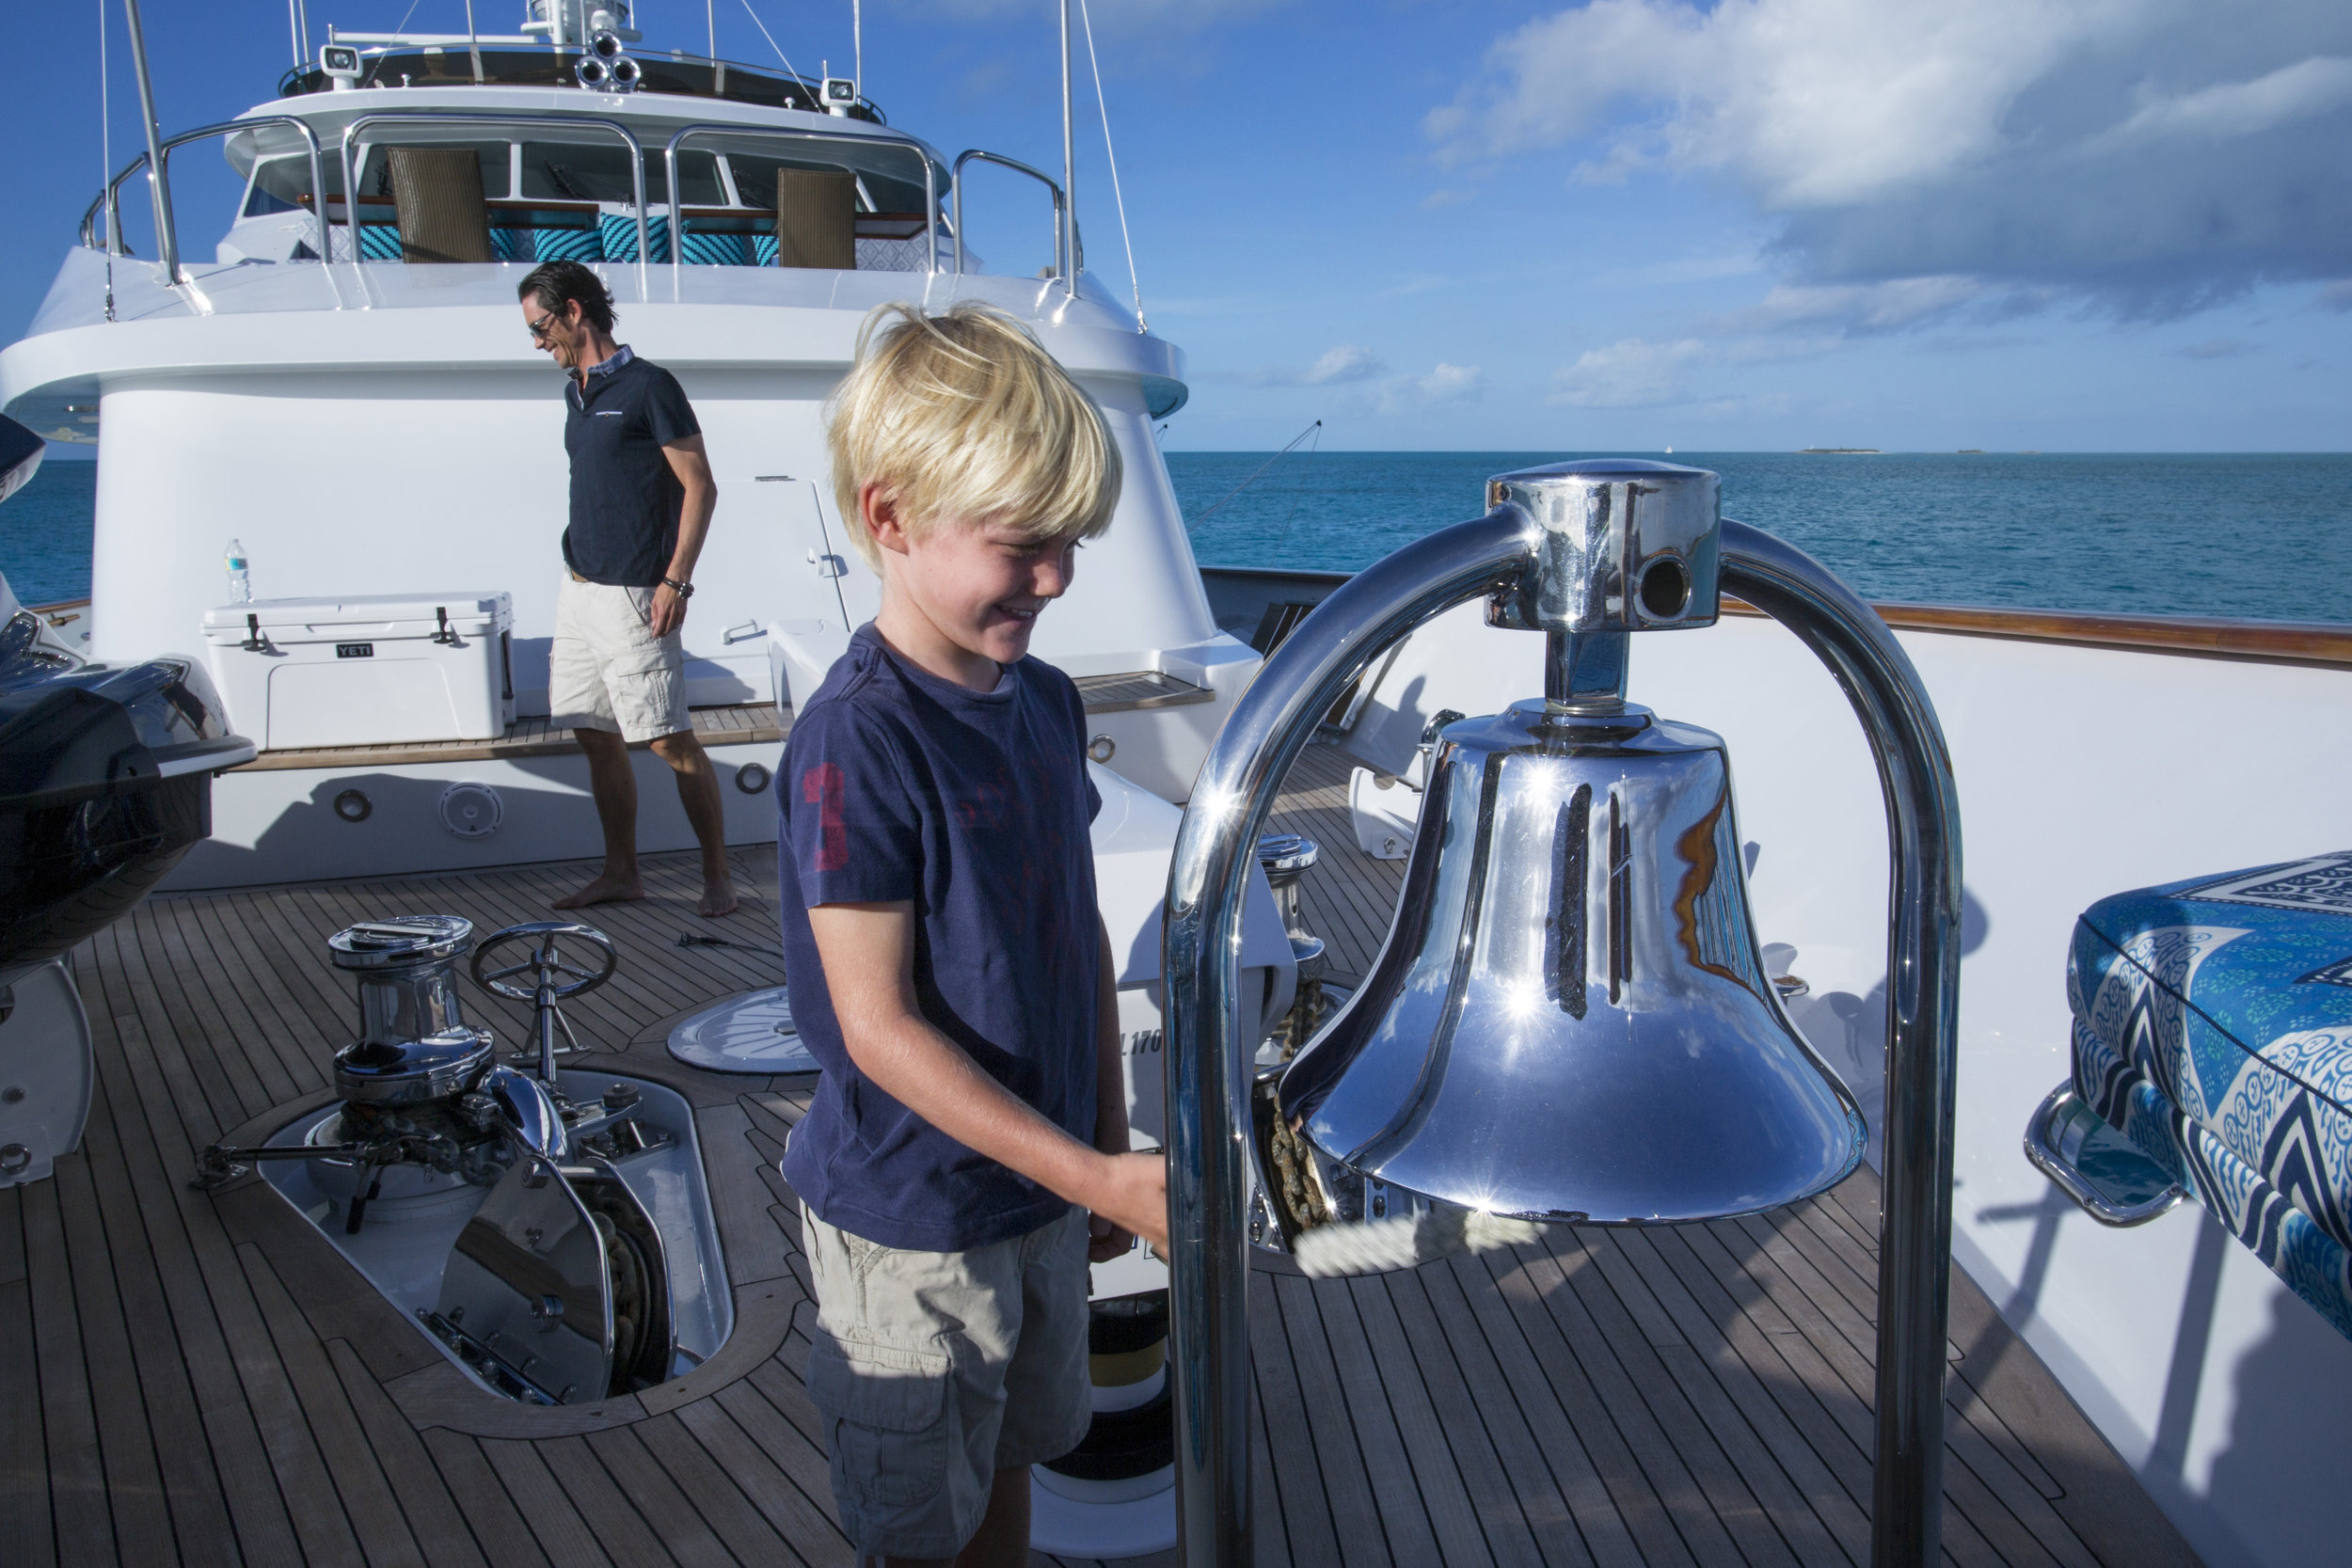 yacht-sweet-escape-tenders-in-tow-charter-toys-nortech-AB-AR190-bell-name